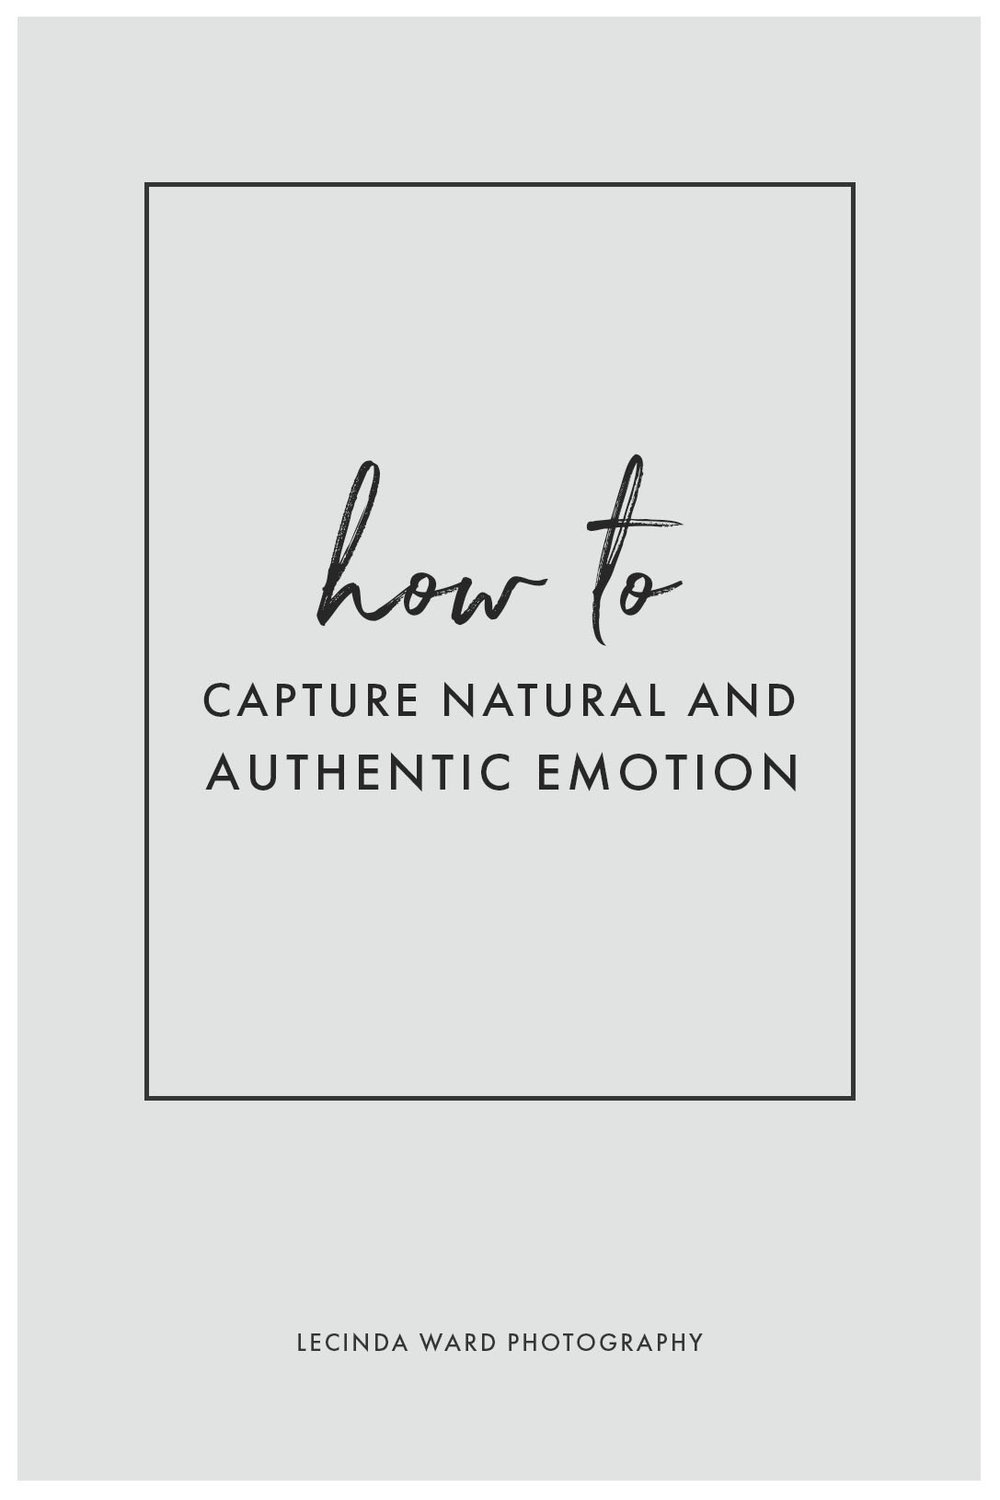 How to Capture Natural and Authentic Emotion